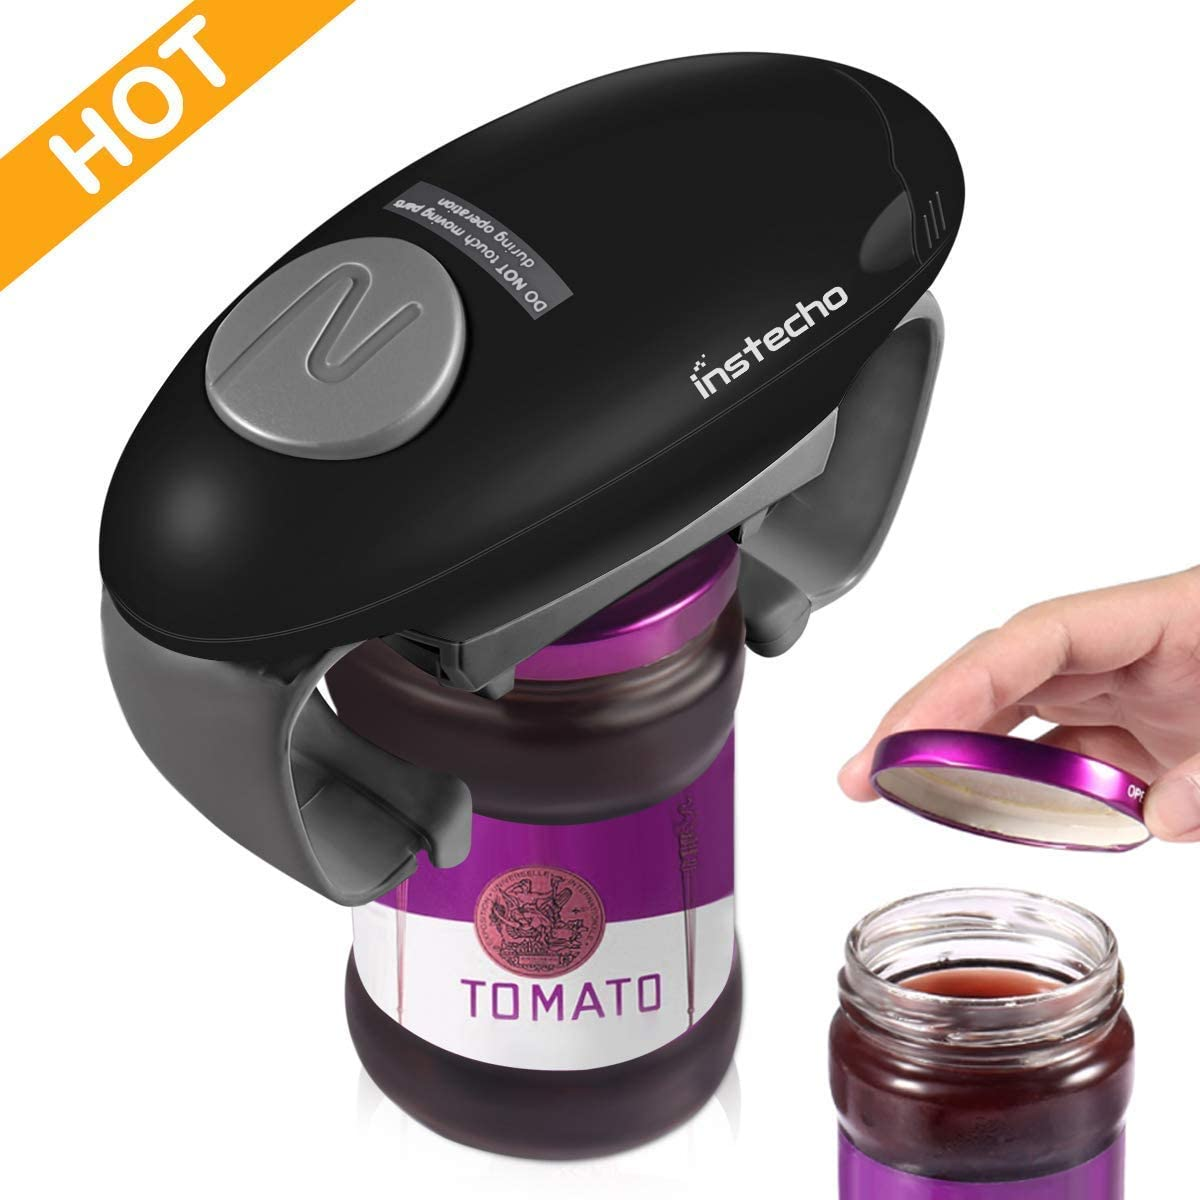 Automatic Jar Bottle Opener, Best Kitchen Tool For Women, Chef, Elderly and Arthritis Sufferers – Open any Jar and Bottle